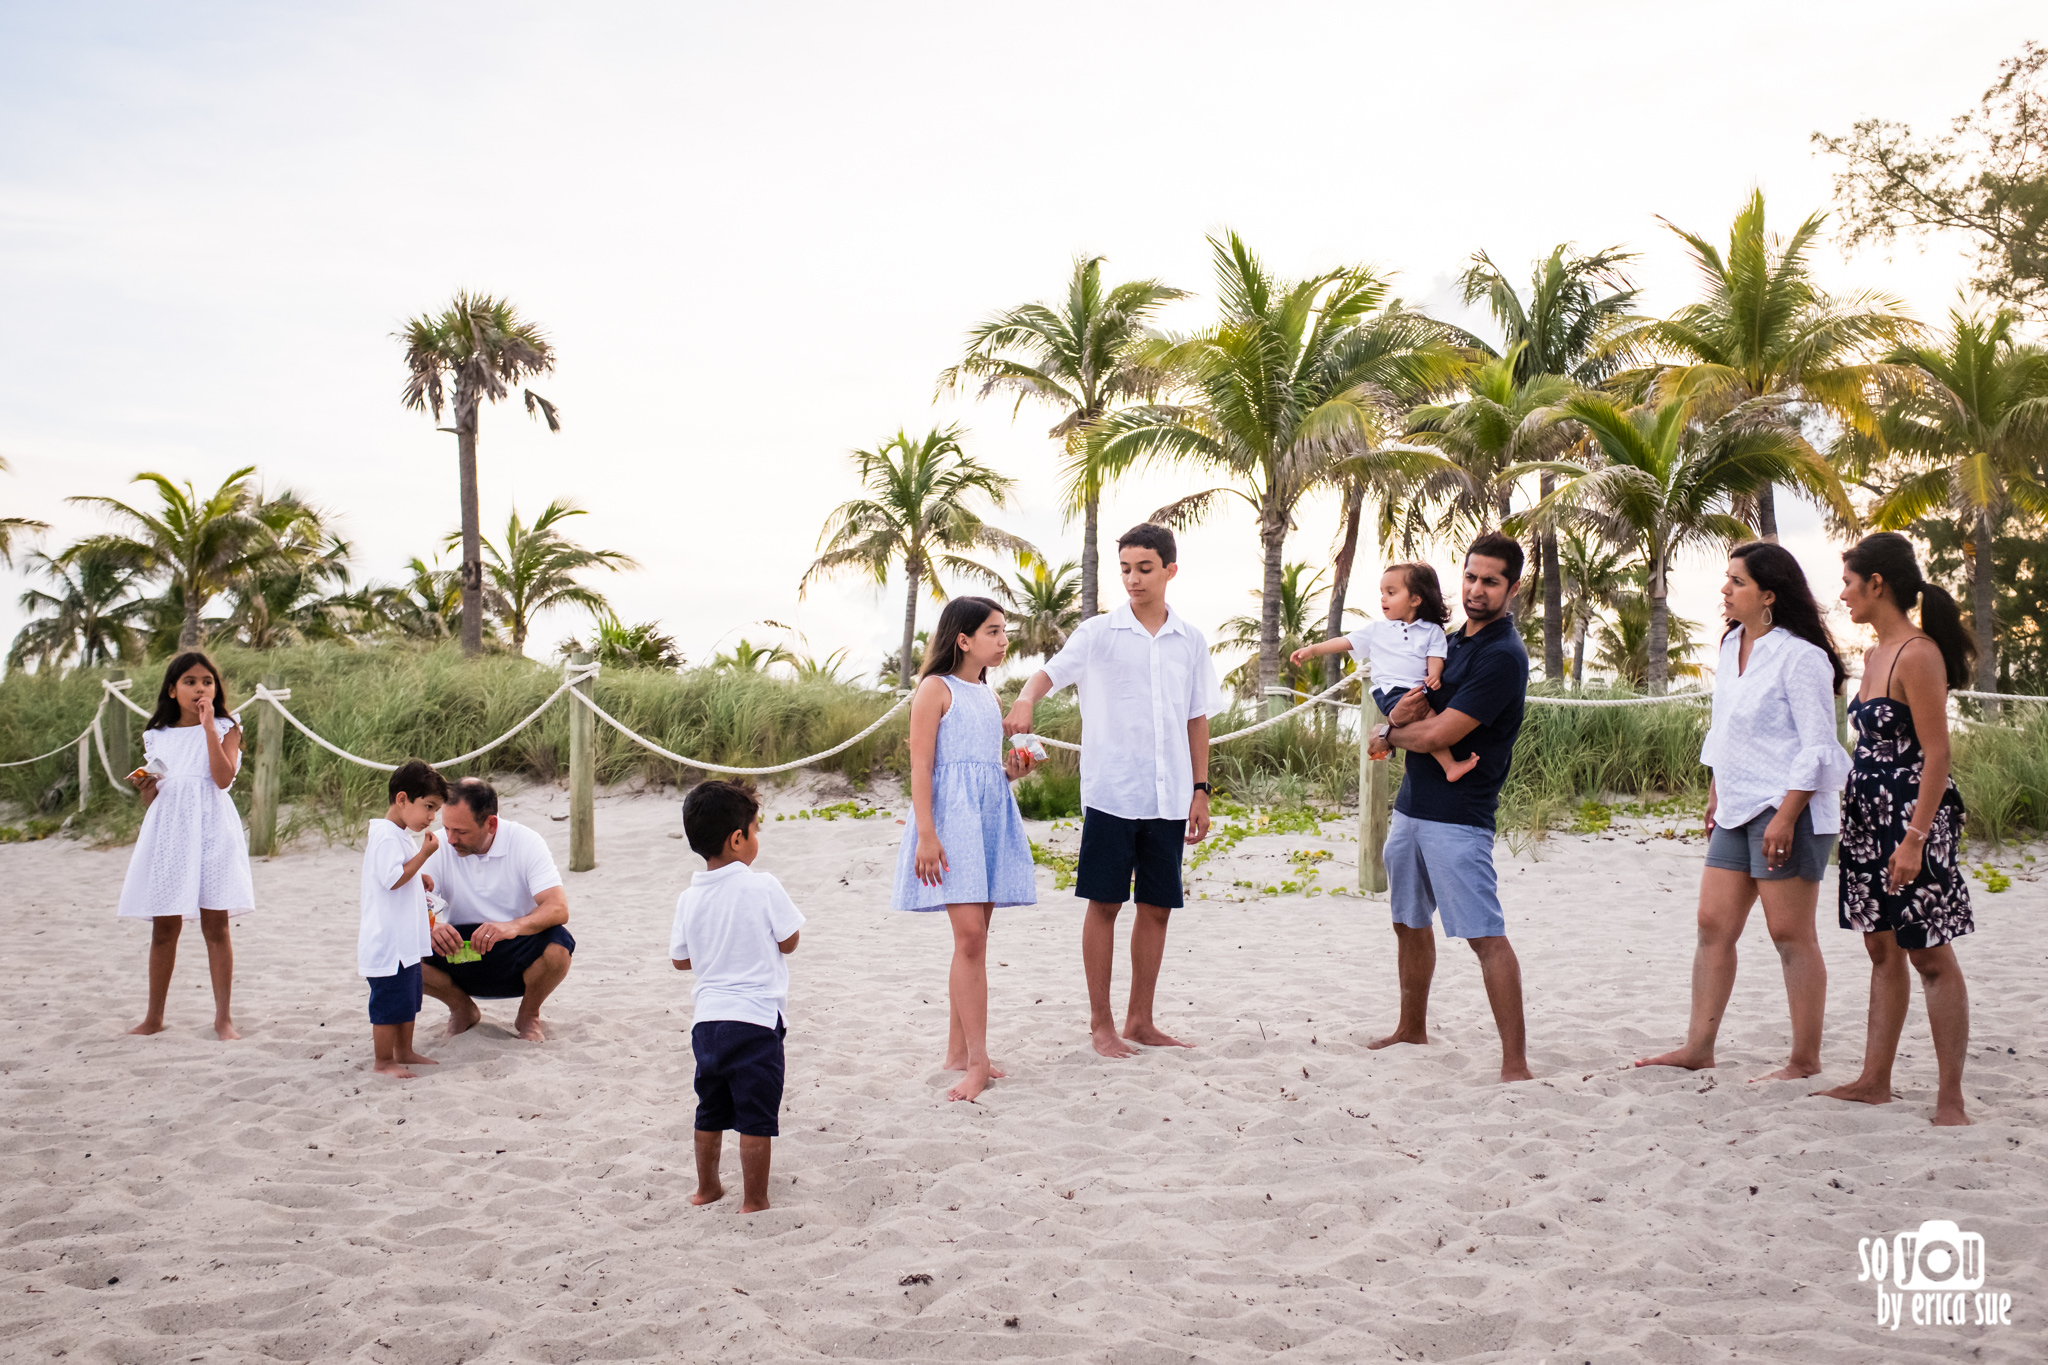 so-you-by-erica-sue-dania-beach-lifestyle-family-photographer-session-fuji-x100f-0874.JPG